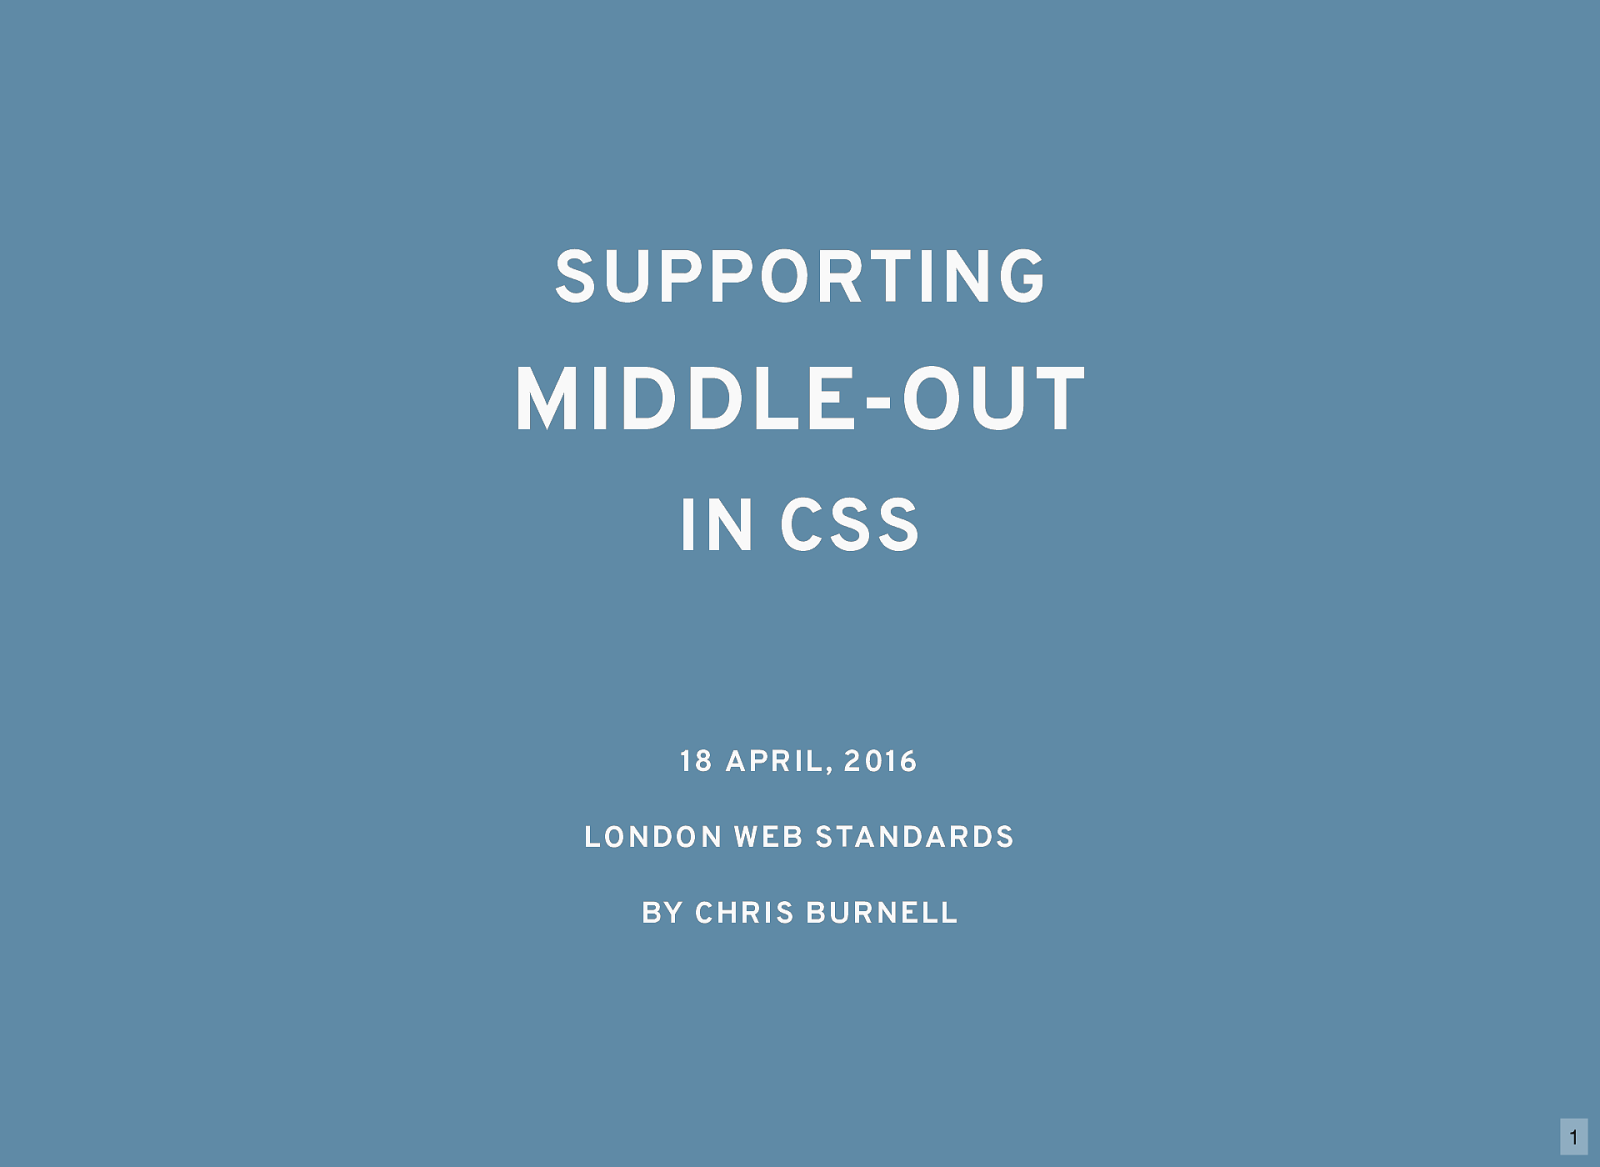 Supporting Middle-Out in CSS